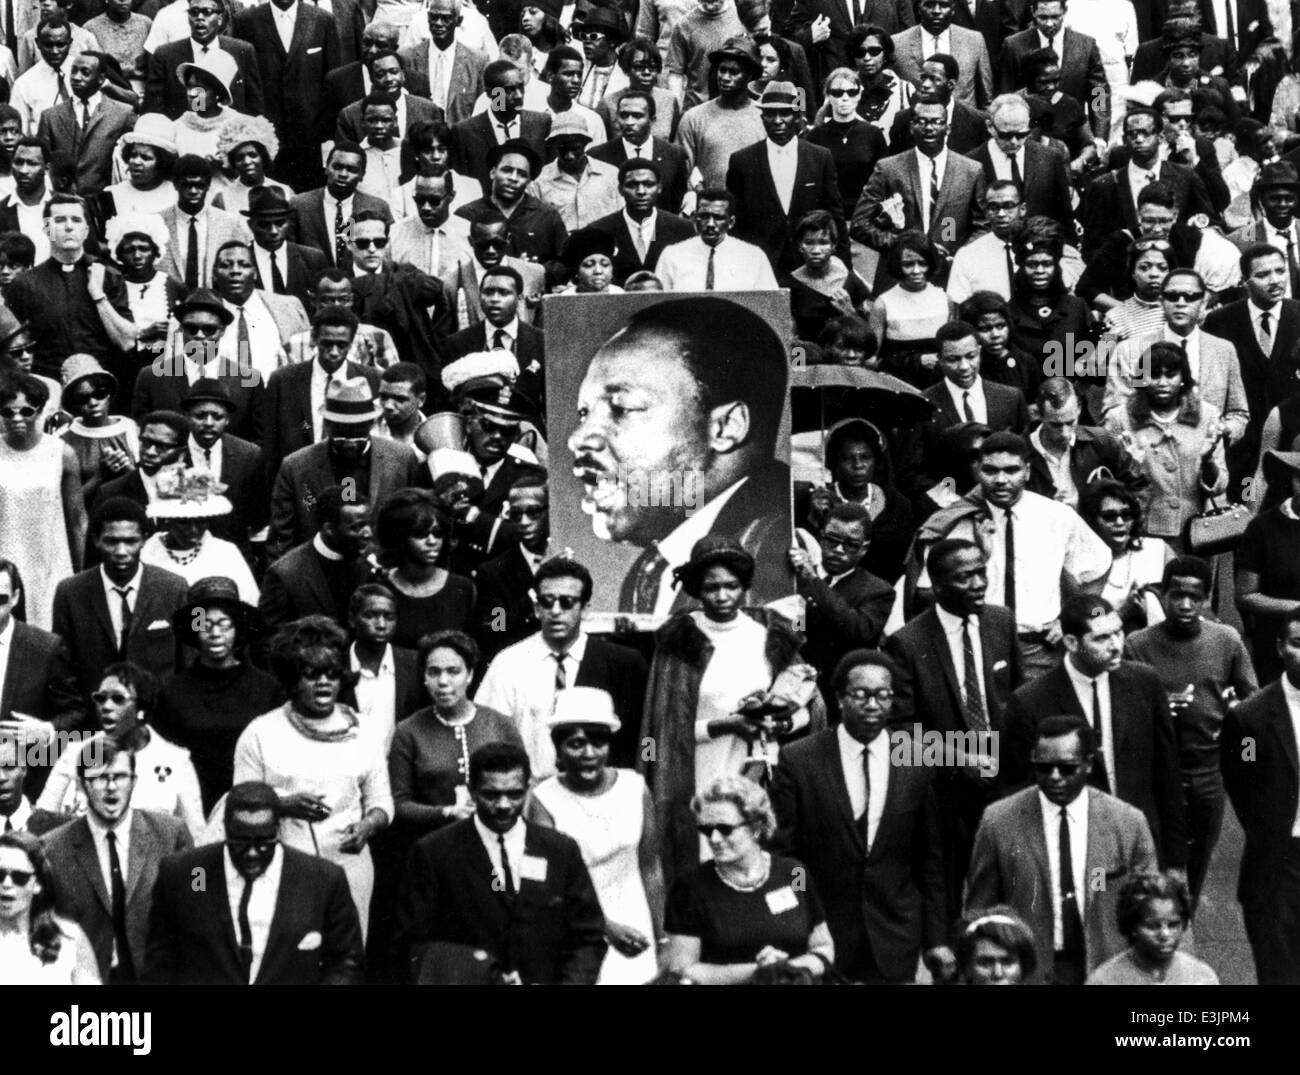 El funeral de Martin Luther King, de Atlanta, Georgia, 9 de abril de 1968 Imagen De Stock